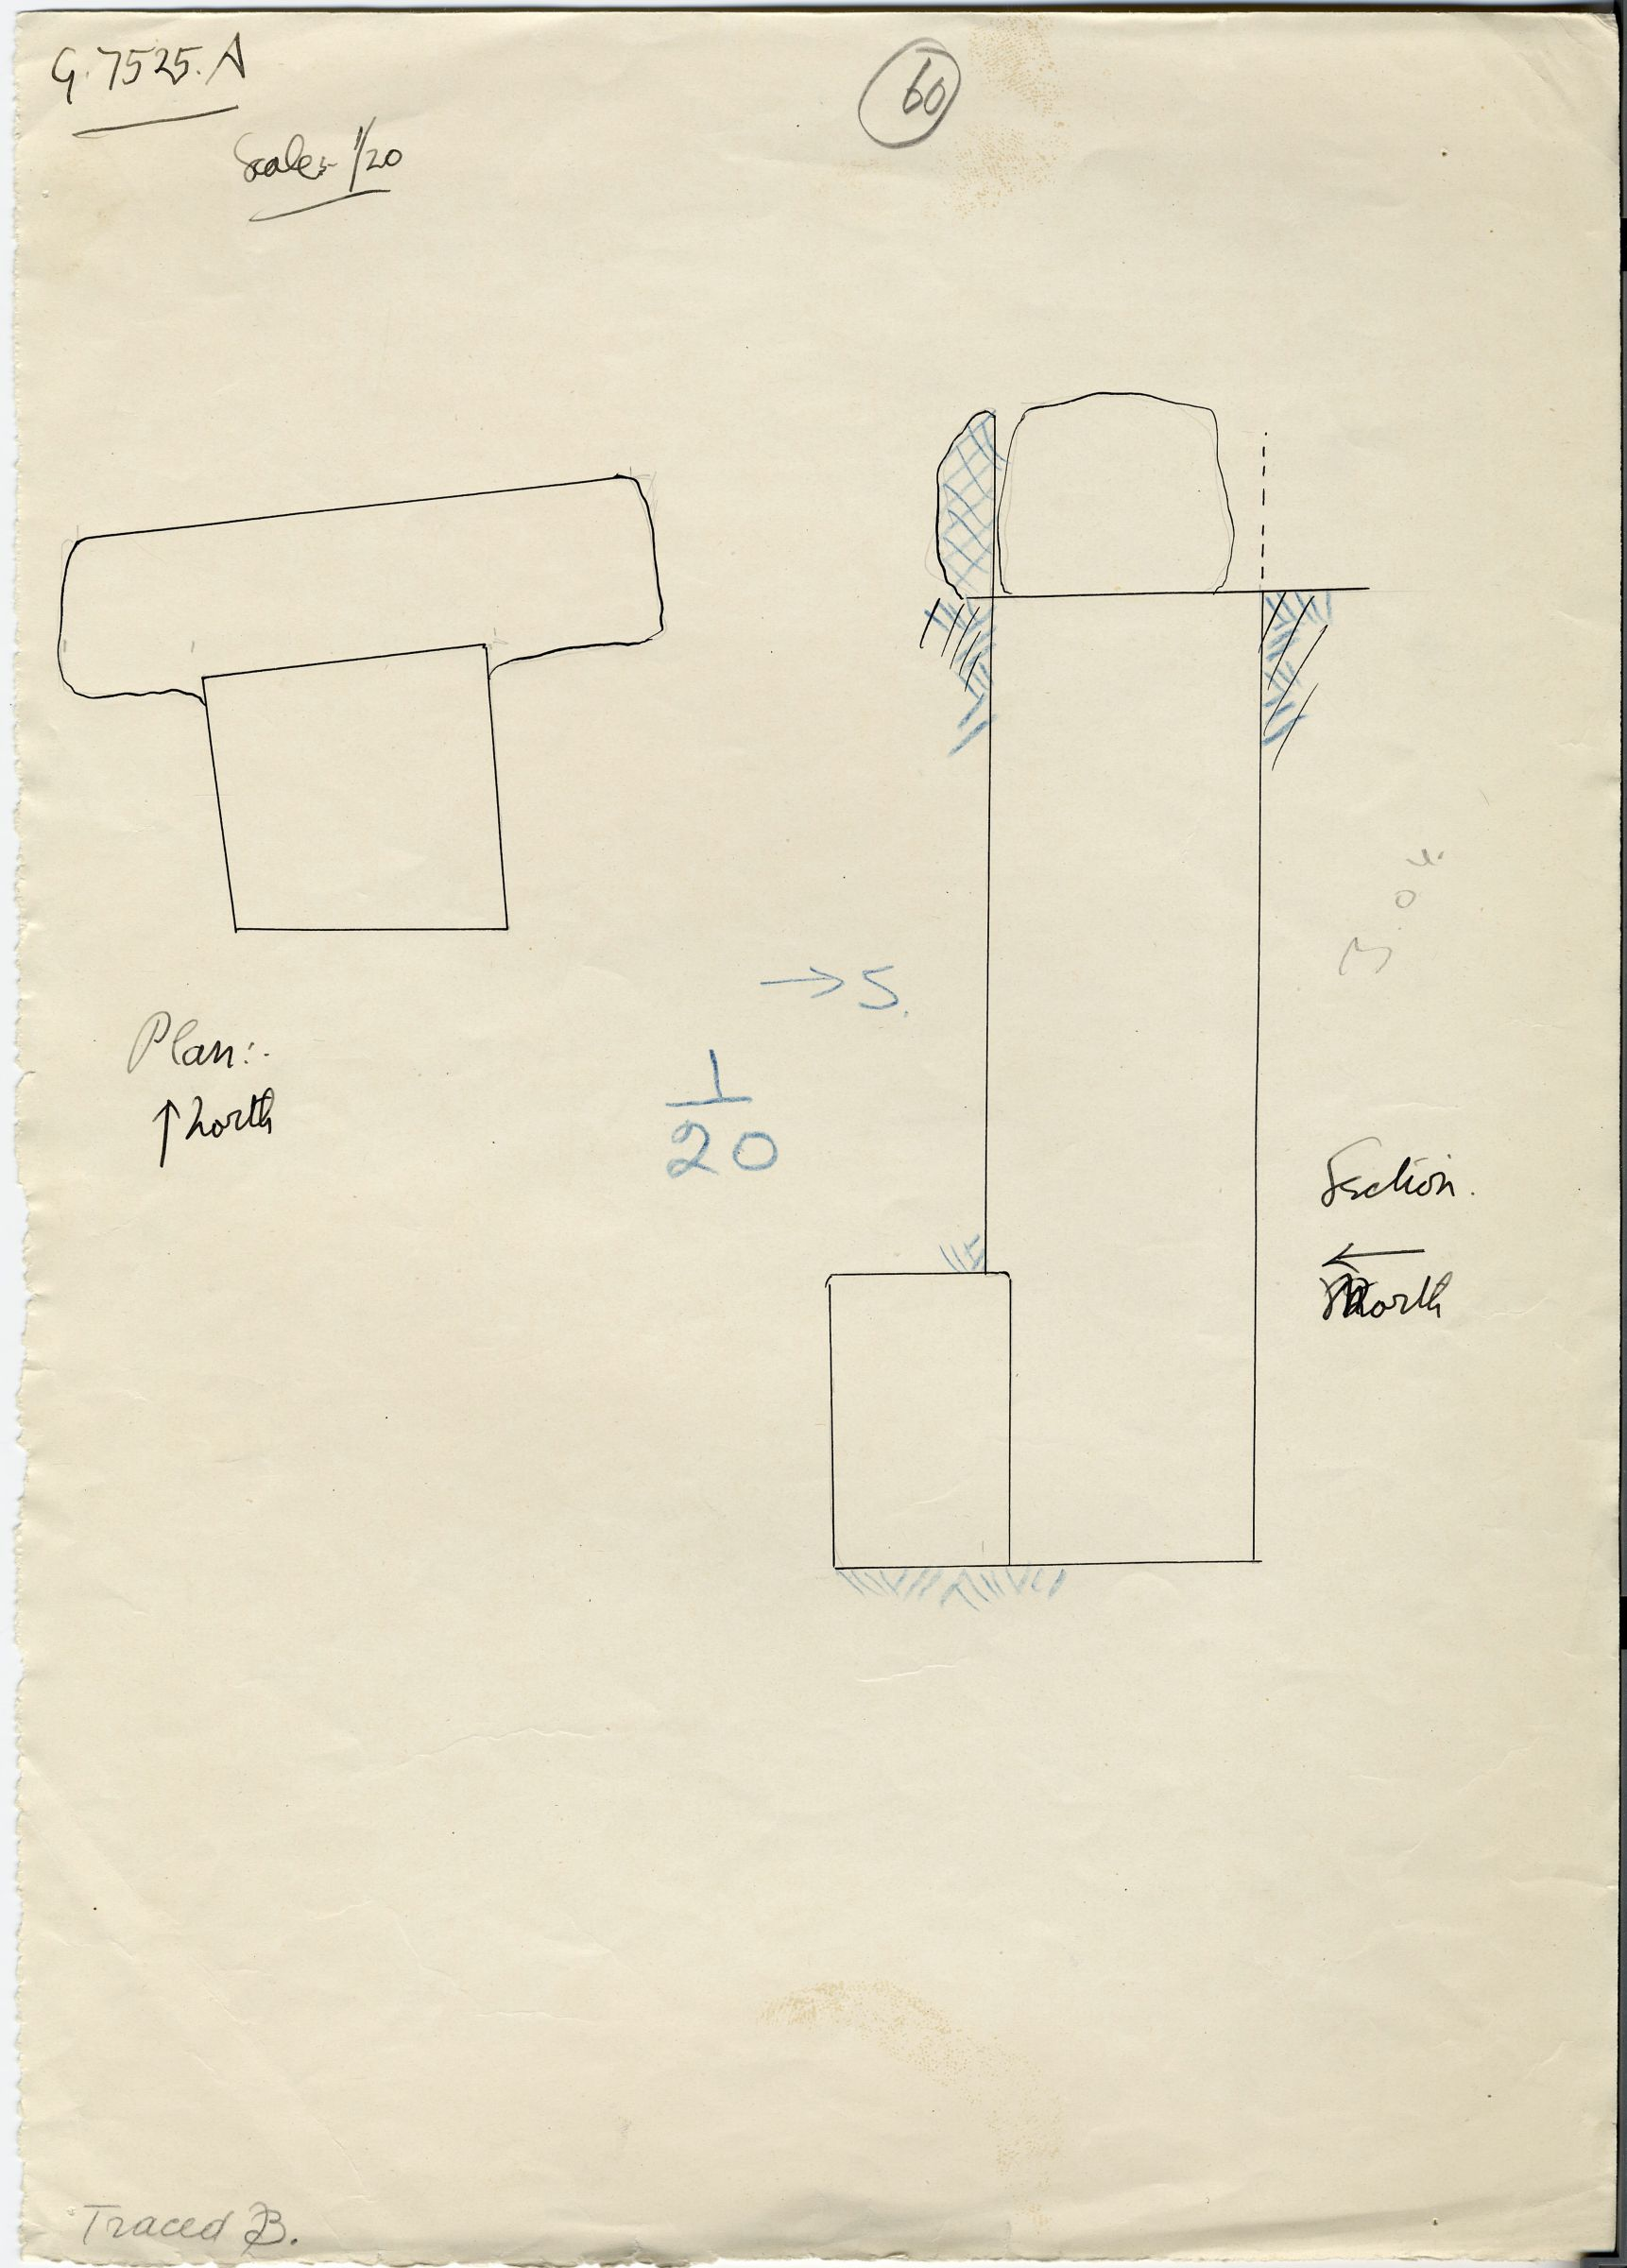 Maps and plans: G 7525, Shaft A